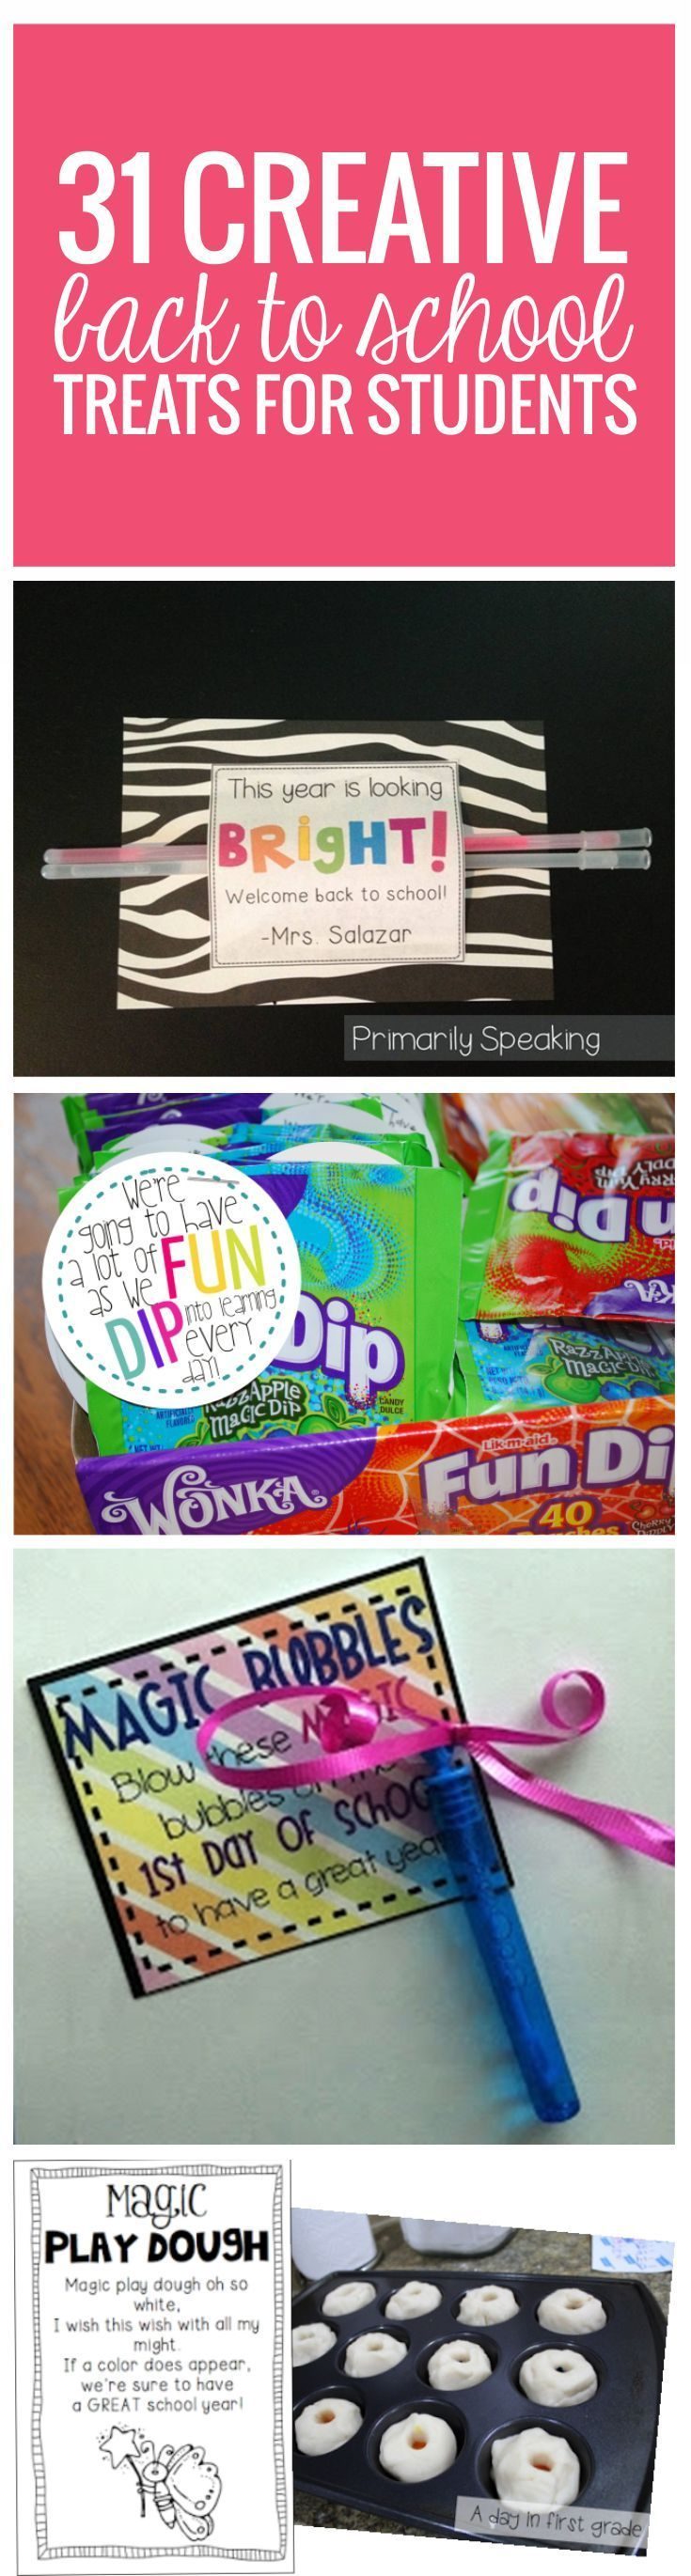 31 Creative Back to School Treats for Students - comes with free printables - love it!